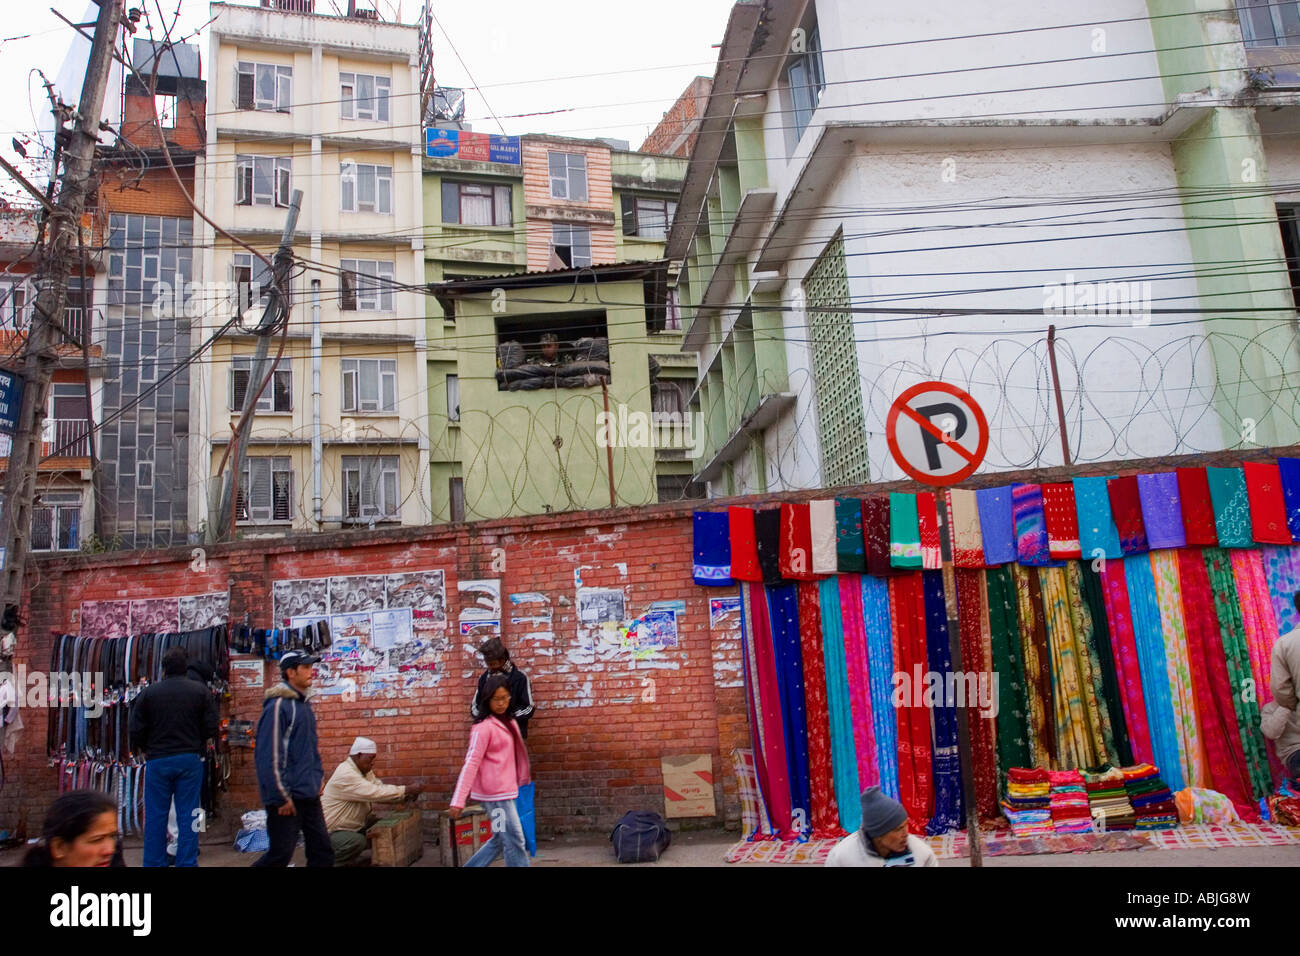 Fabric for sale on the street in central Kathmandhu. - Stock Image